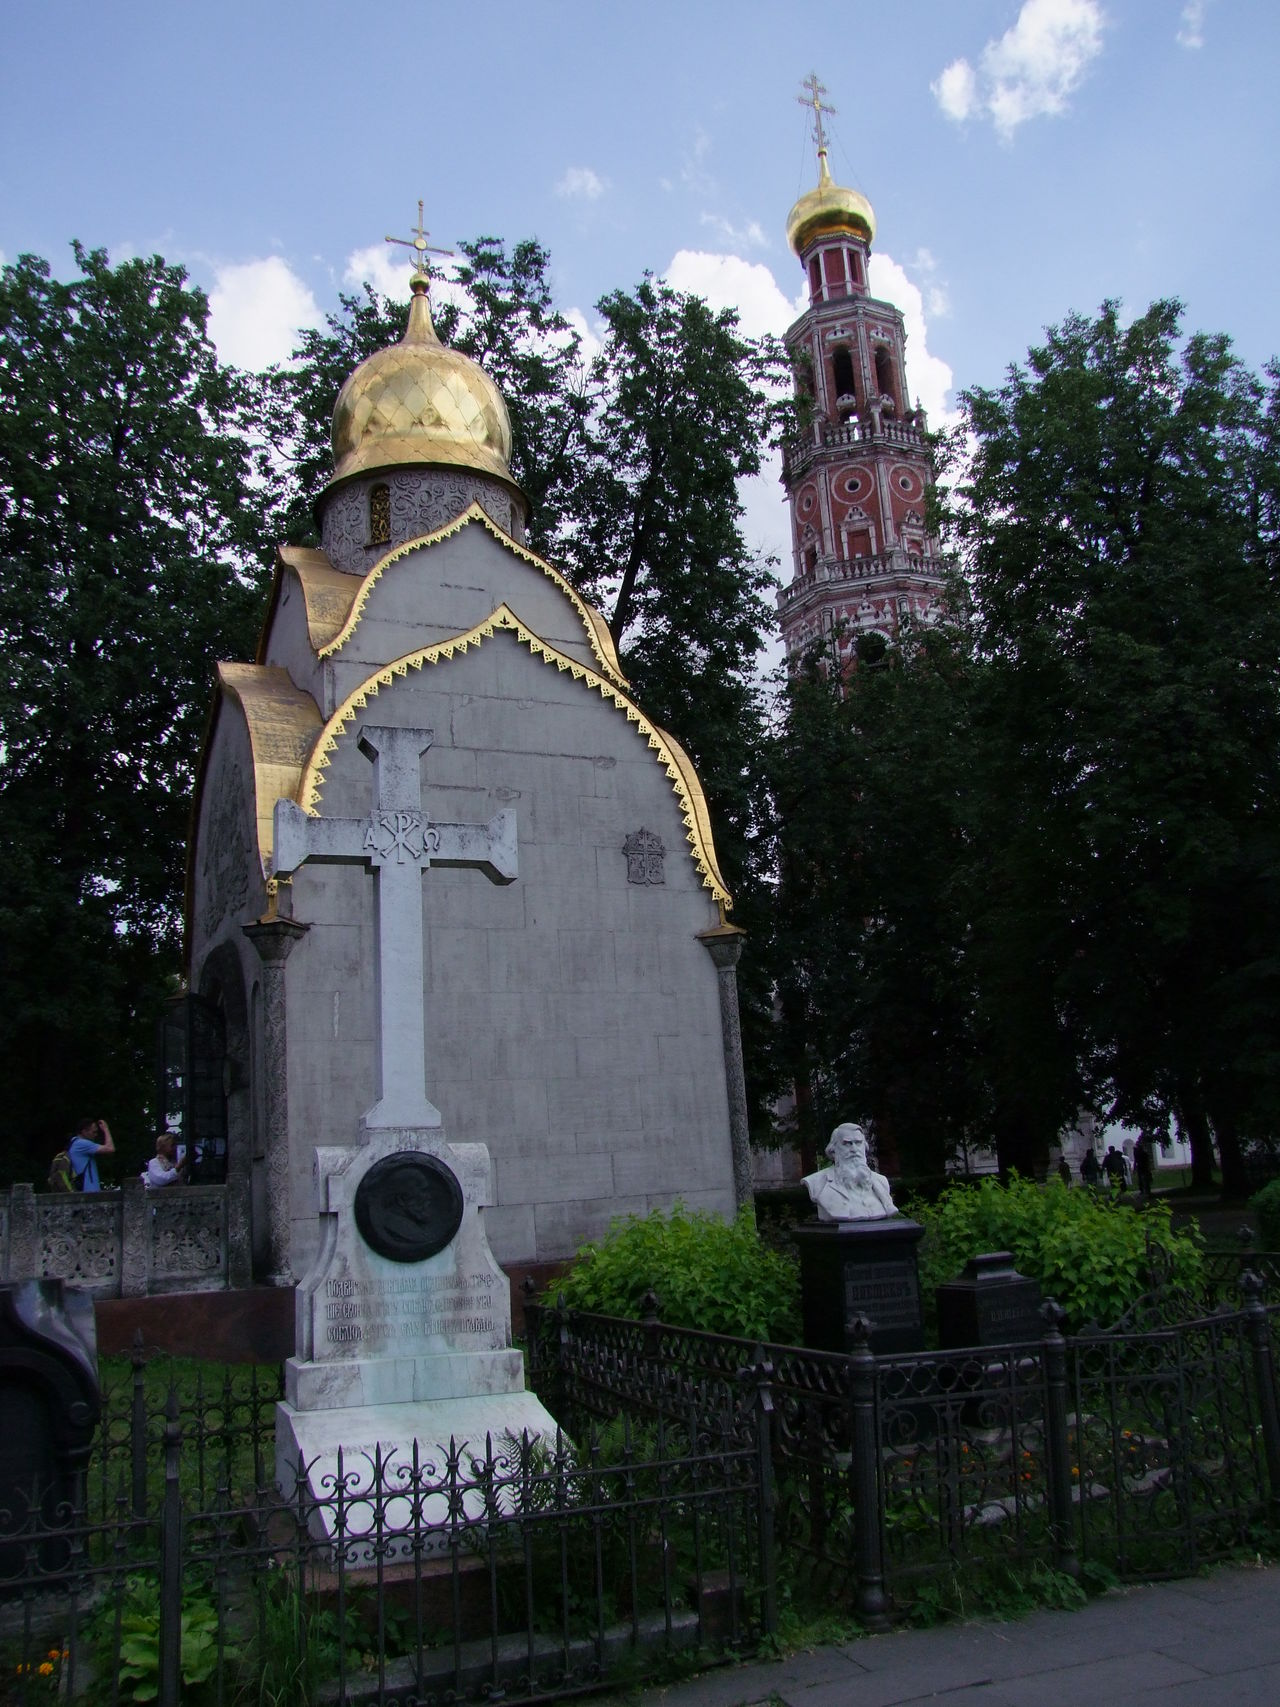 Tomb & Bell Tower (1690), Novodevichy Monastery Architecture Bell Tower Blue Sky White Clouds Building Exterior Built Structure Cathedral Church Day Famous Place Gold Domes Historic History International Landmark Moscow Nompeop Novodevichy Monastery Outdoors Place Of Worship Religion Russia Spirituality Tomb Tower Towers Trees